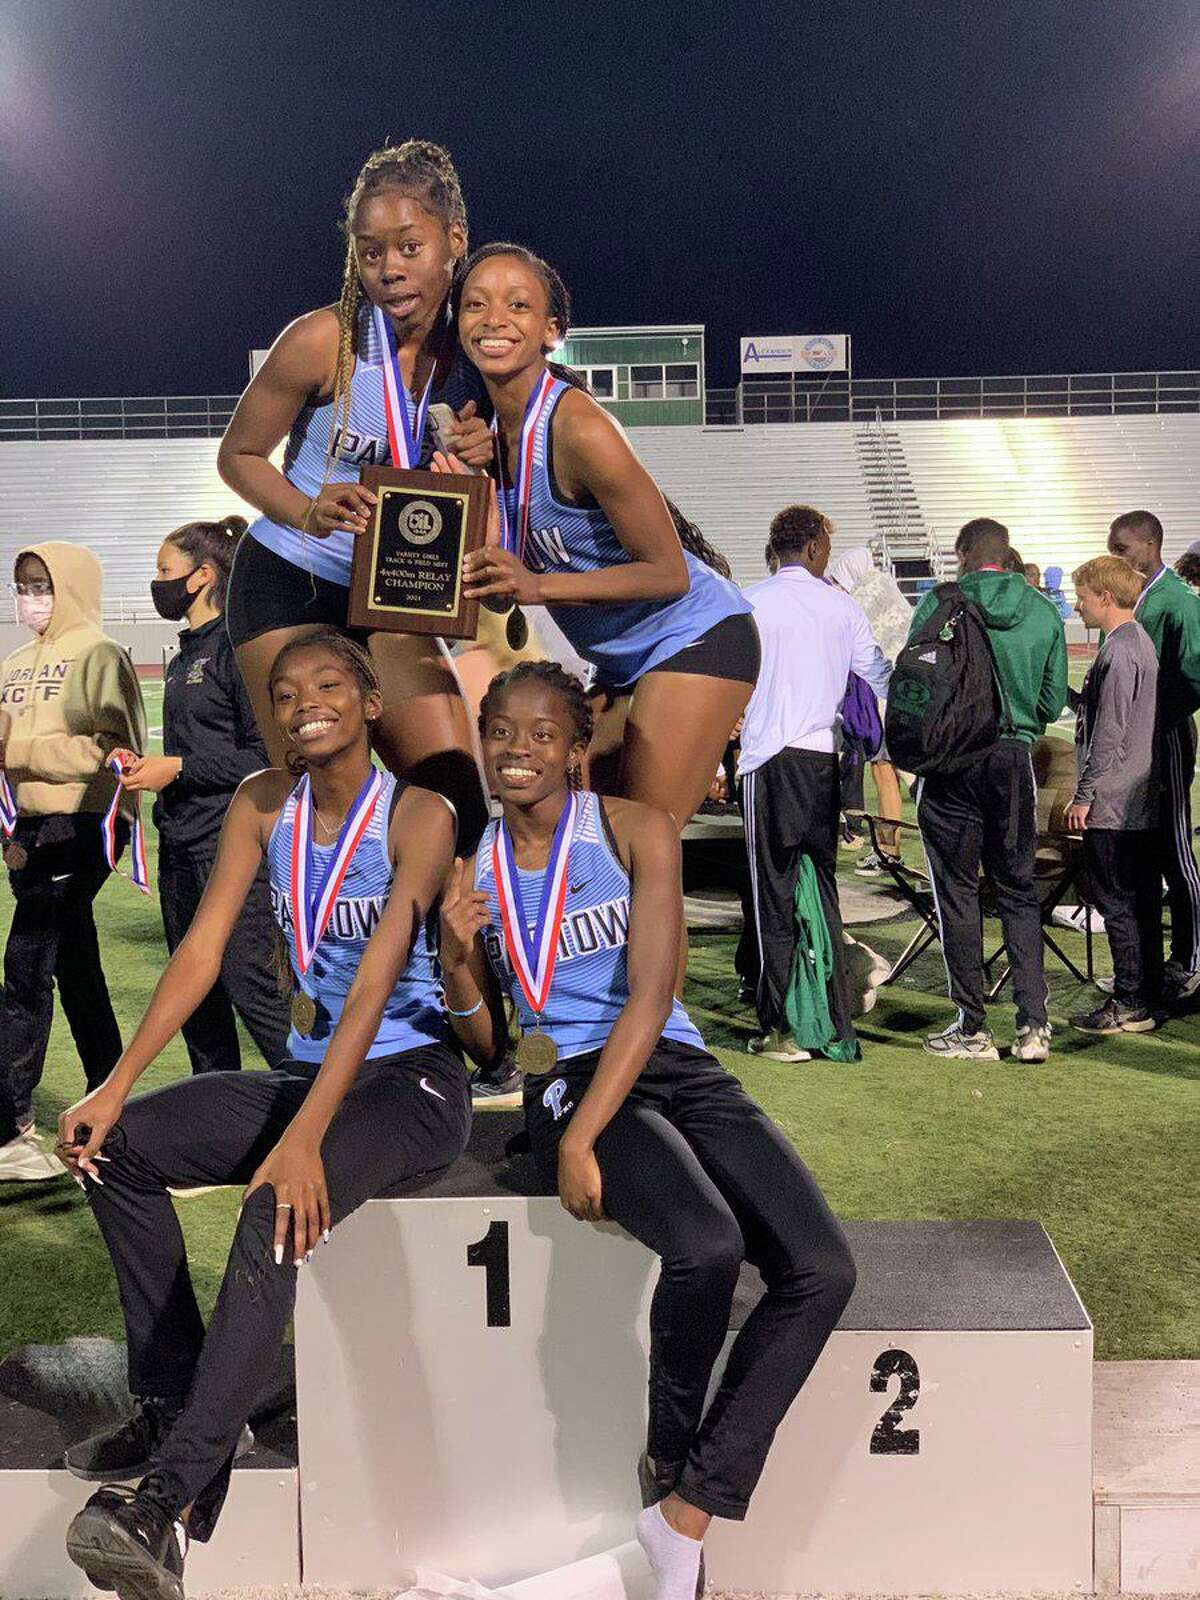 The Paetow girls 1,600-meter relay team of Missy Adeboyejo, Kameron Butler, Tumi Onaleye and Jordan Ward won the District 19-5A championship with a time of 4:13.61. Onaleye added victories in both hurdling events.